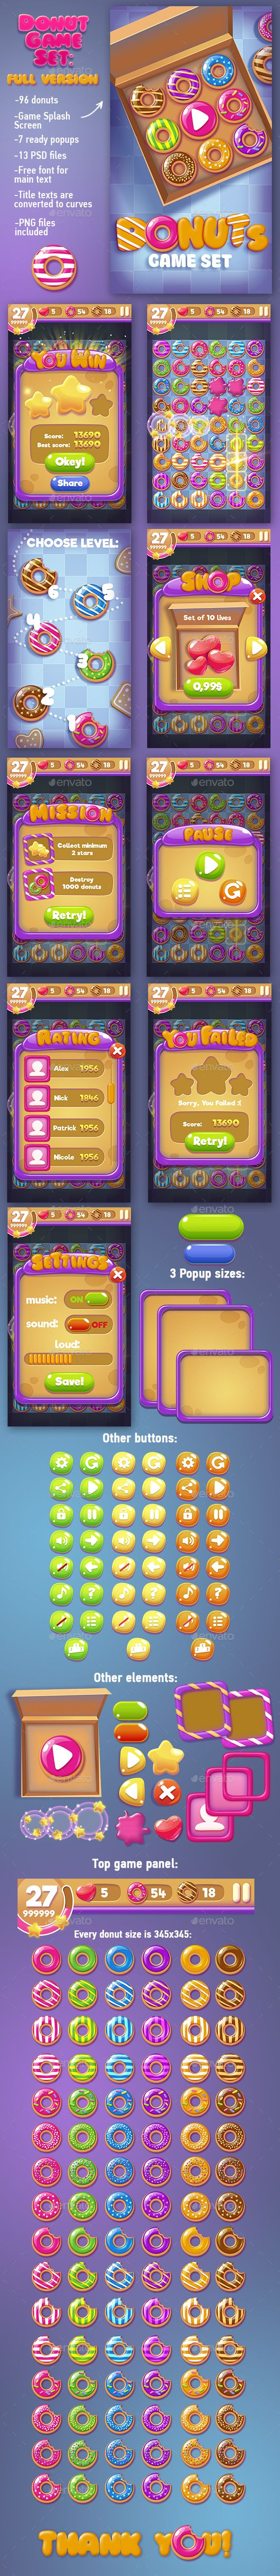 Big Donuts Game Set with GUI — Photoshop PSD #gui #match 3 • Available here → https://graphicriver.net/item/big-donuts-game-set-with-gui/15501468?ref=pxcr